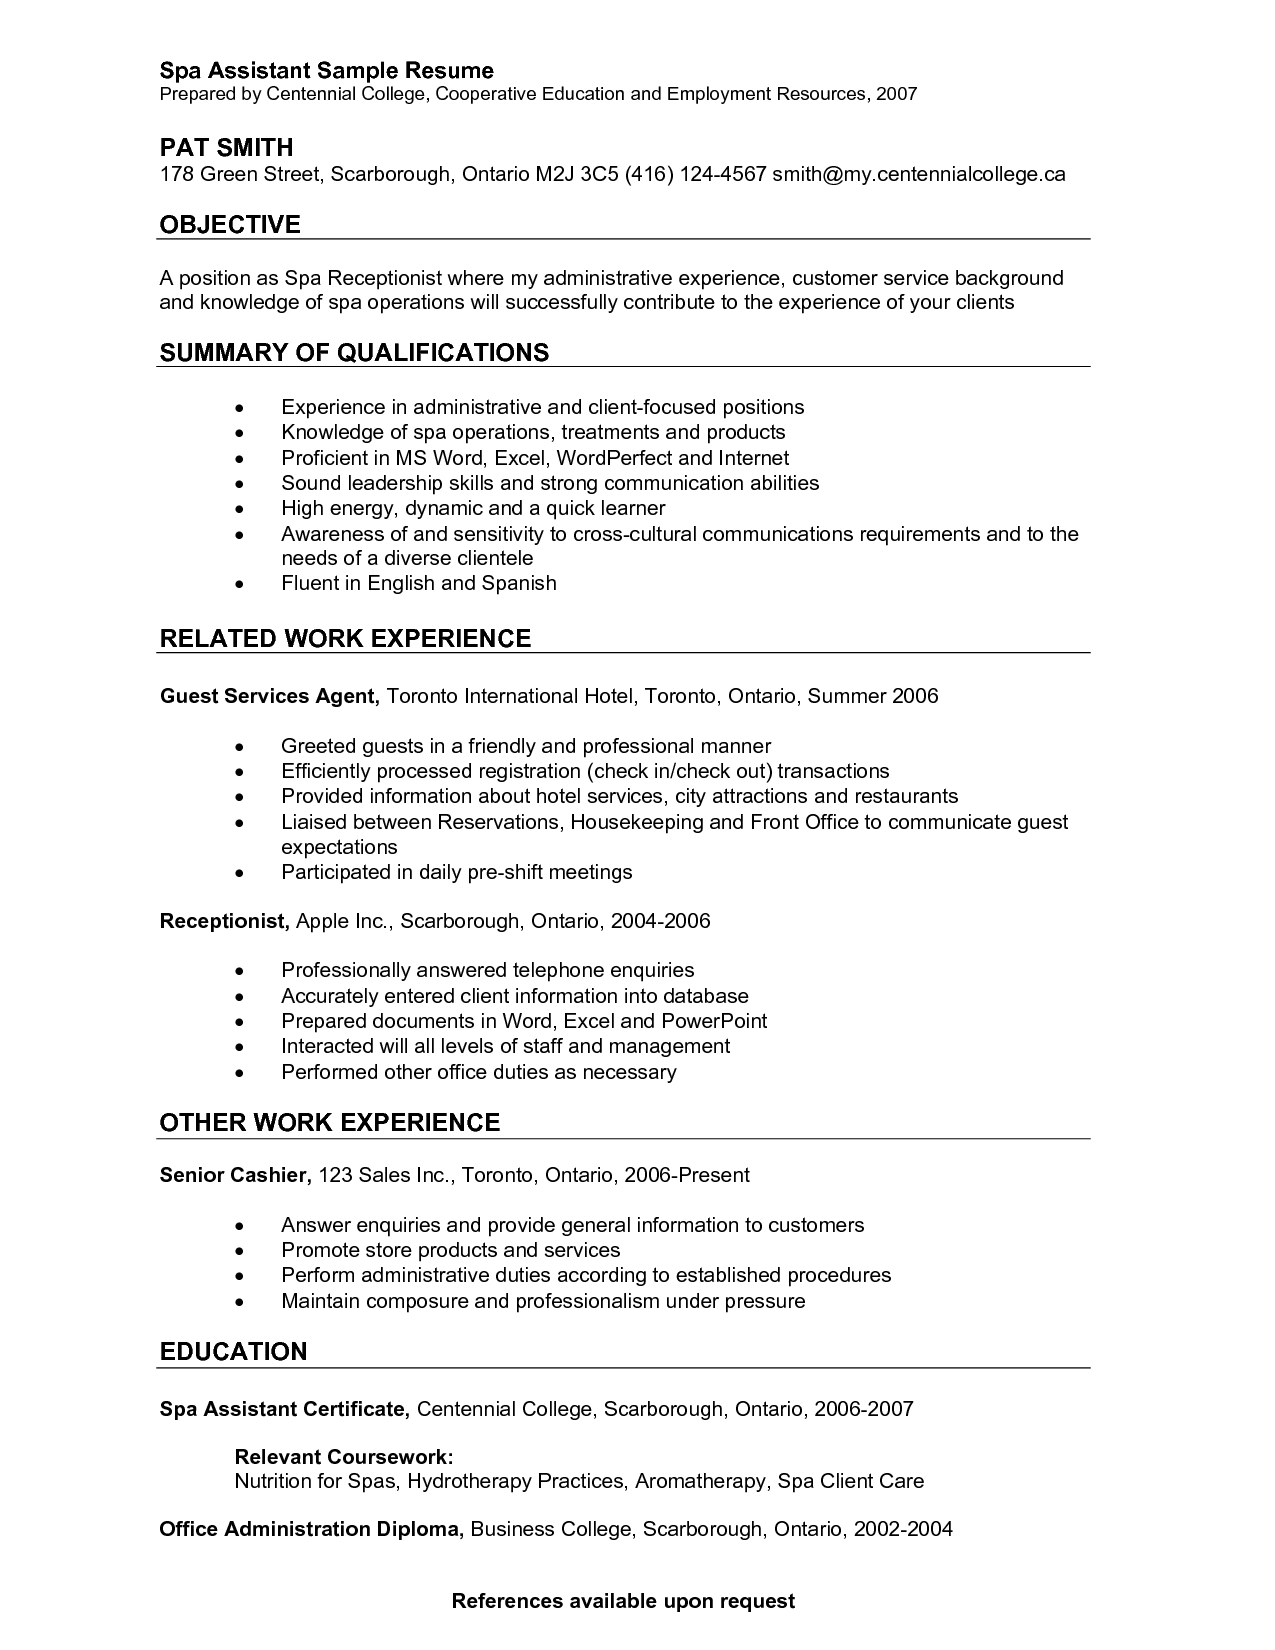 Receptionist Resume Samples Medical Receptionist Resume Objective Samples  Resume  Pinterest